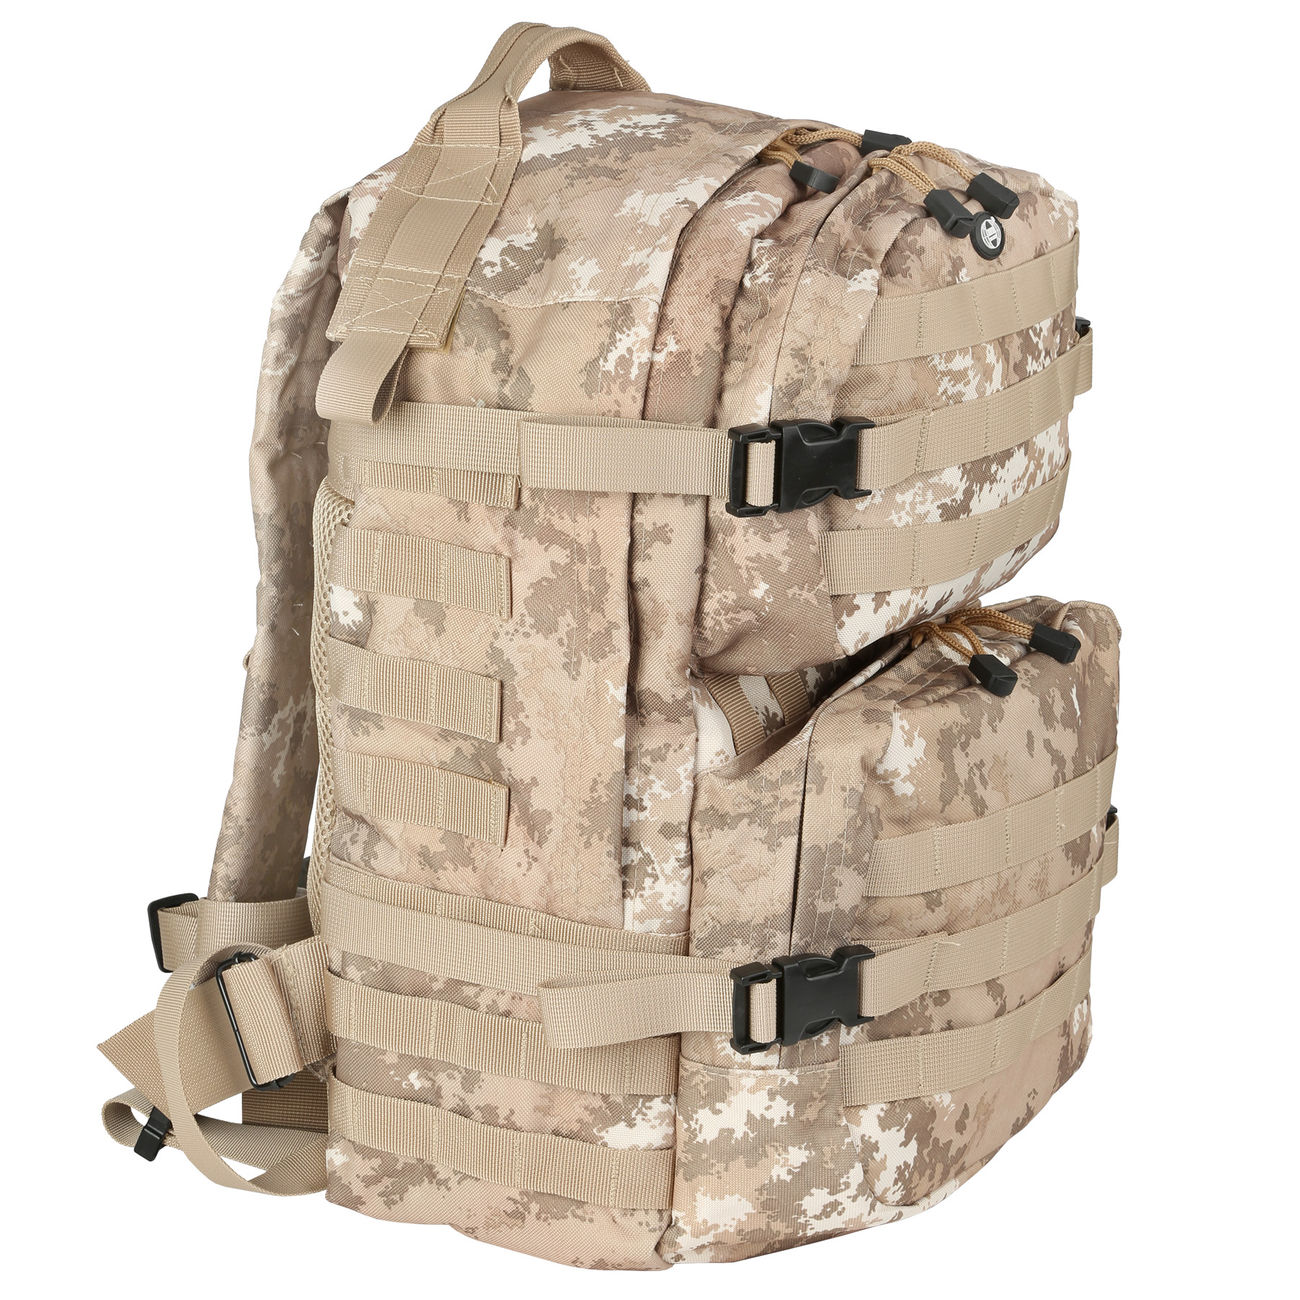 MFH Rucksack US Assault II vegetato desert 0